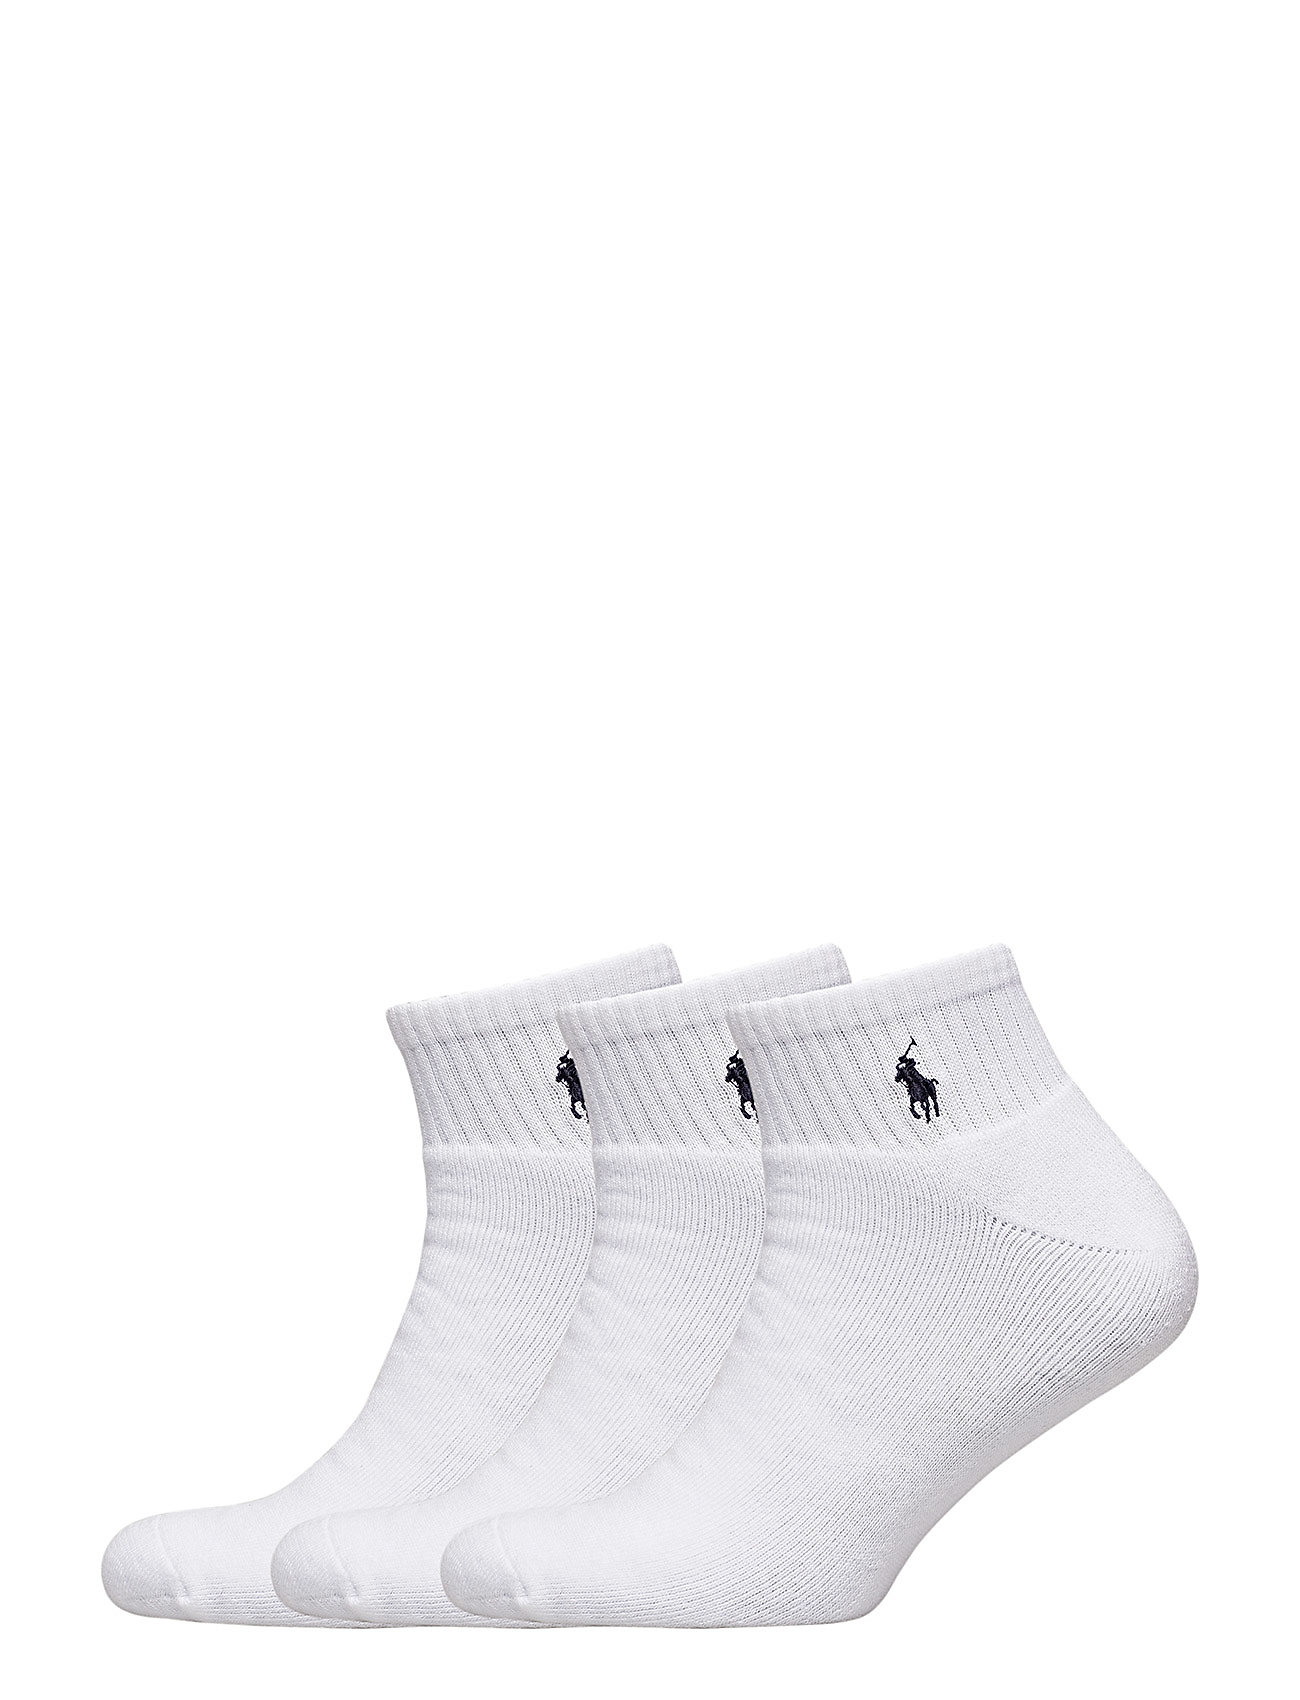 Polo Ralph Lauren Underwear QUARTER-SOCKS-3 PACK - WHITE